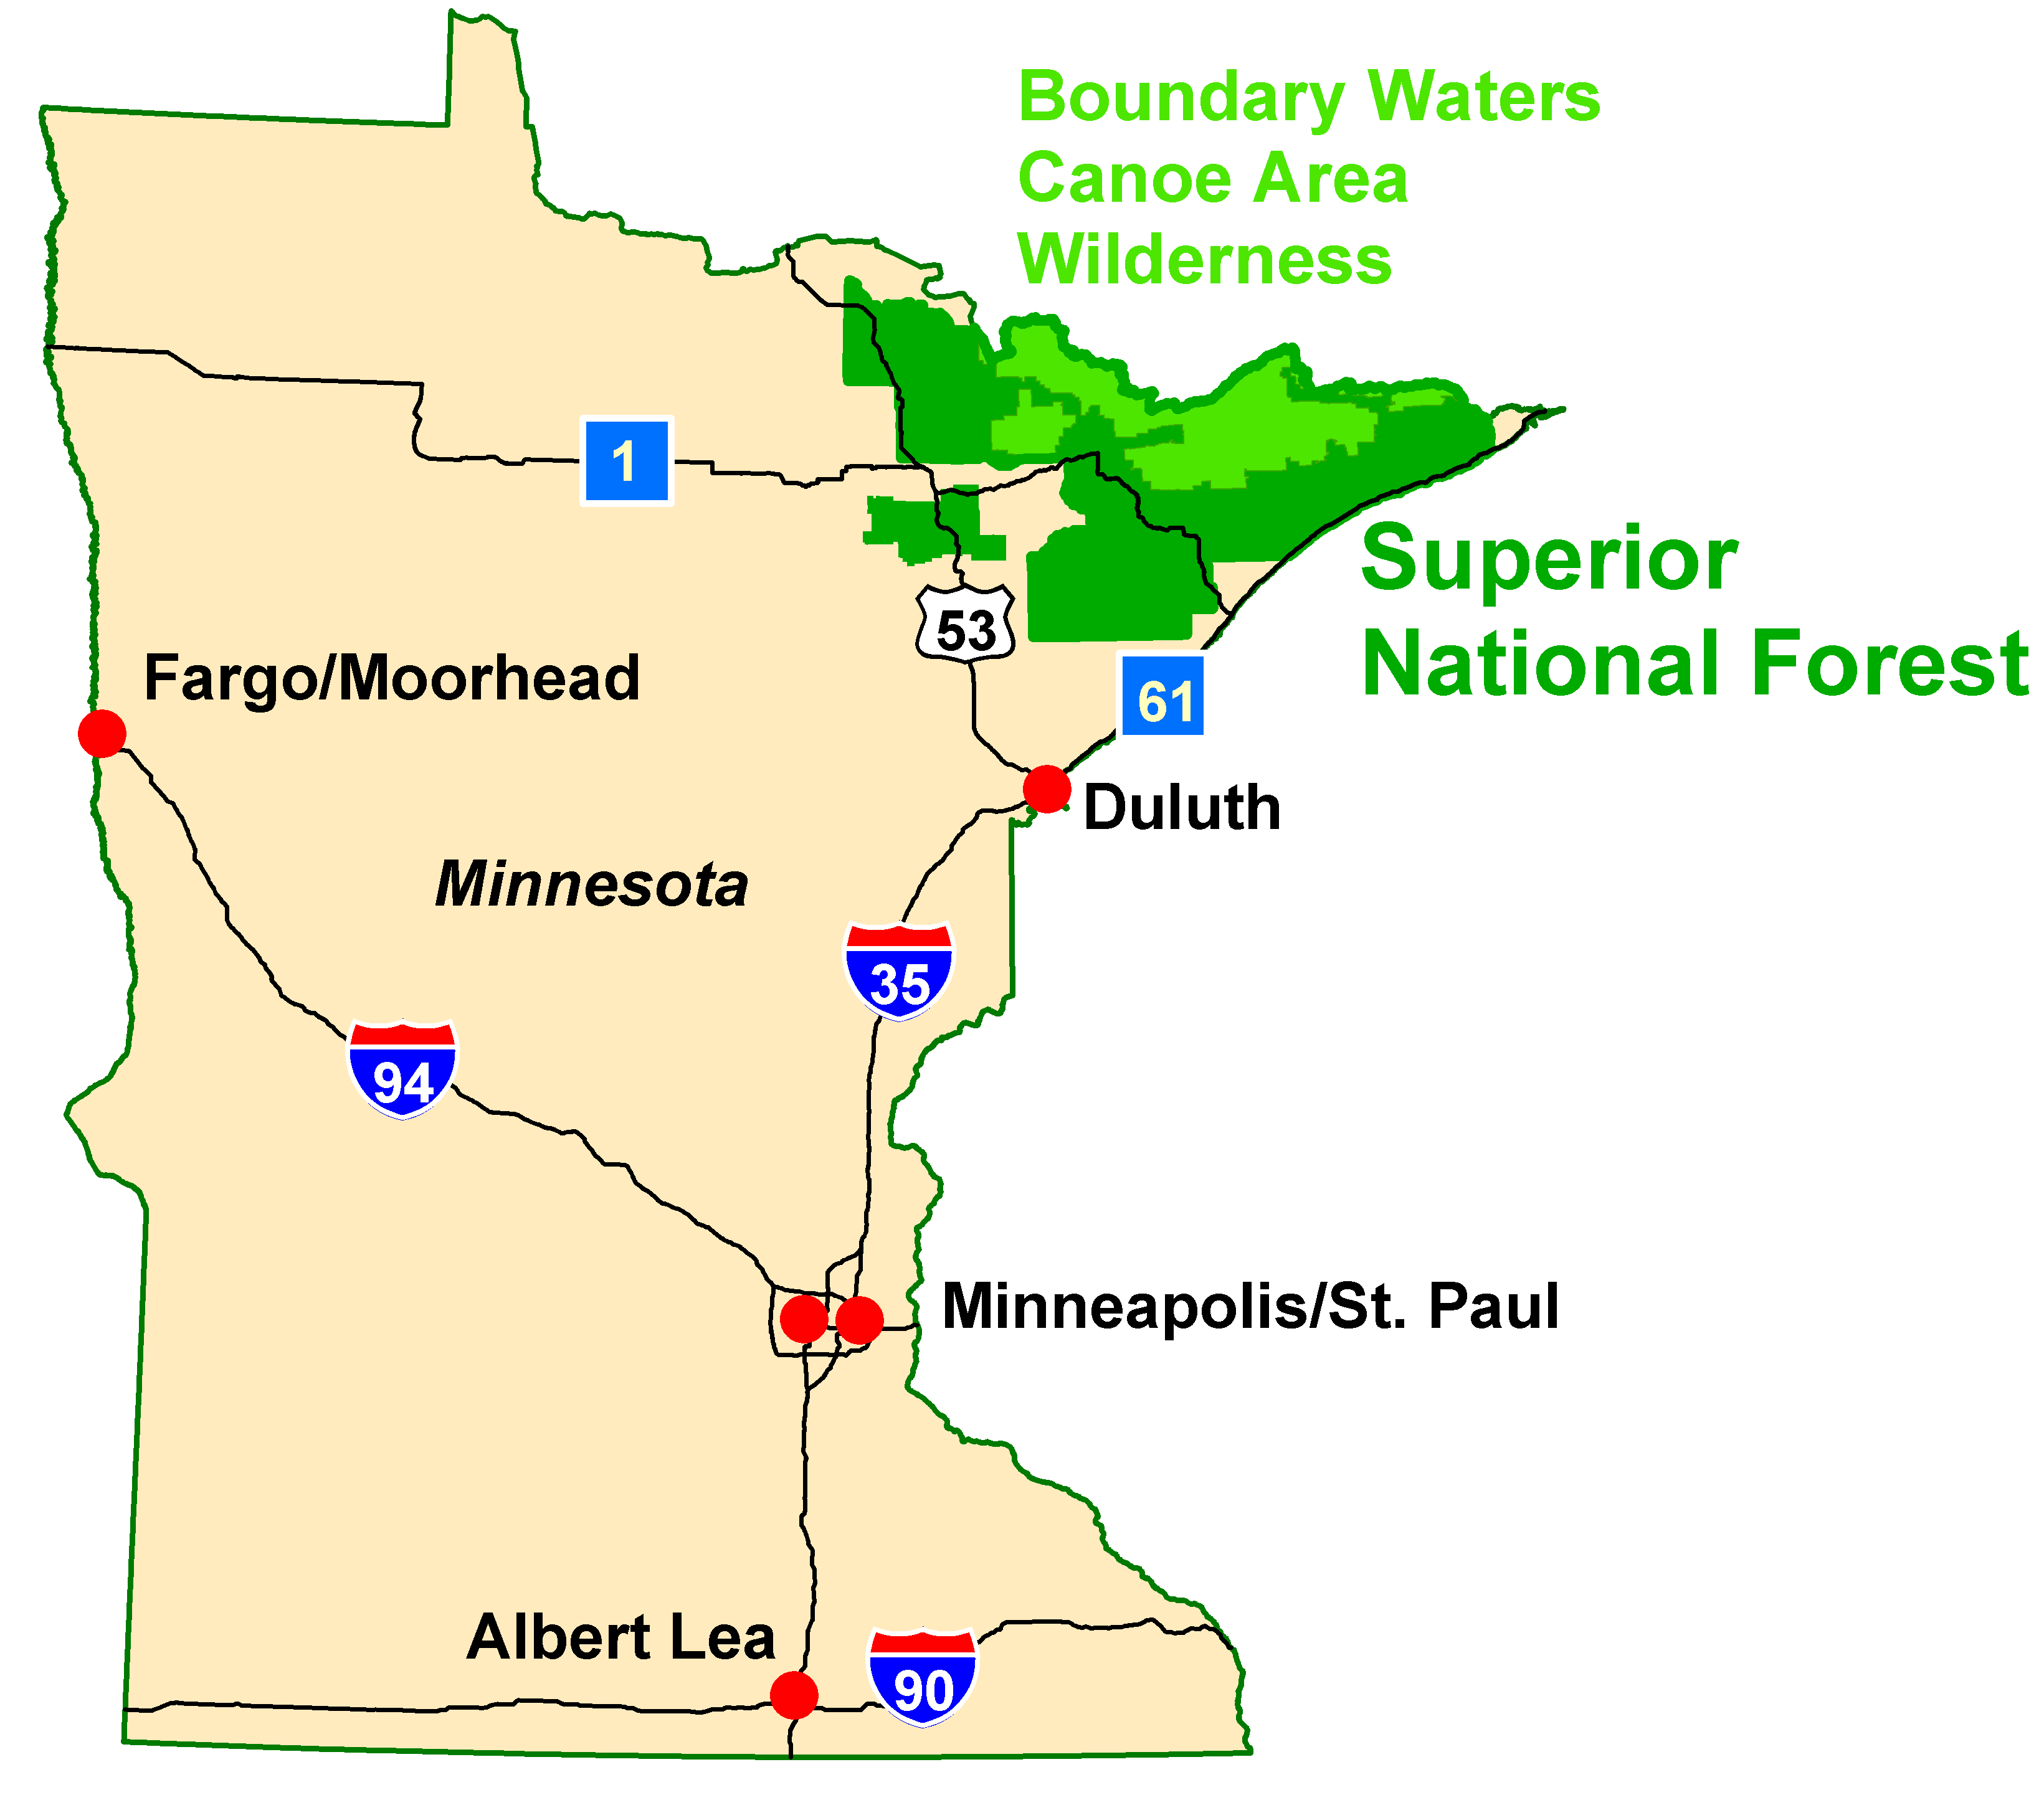 The Superior National Forest is located in northeastern Minnesota